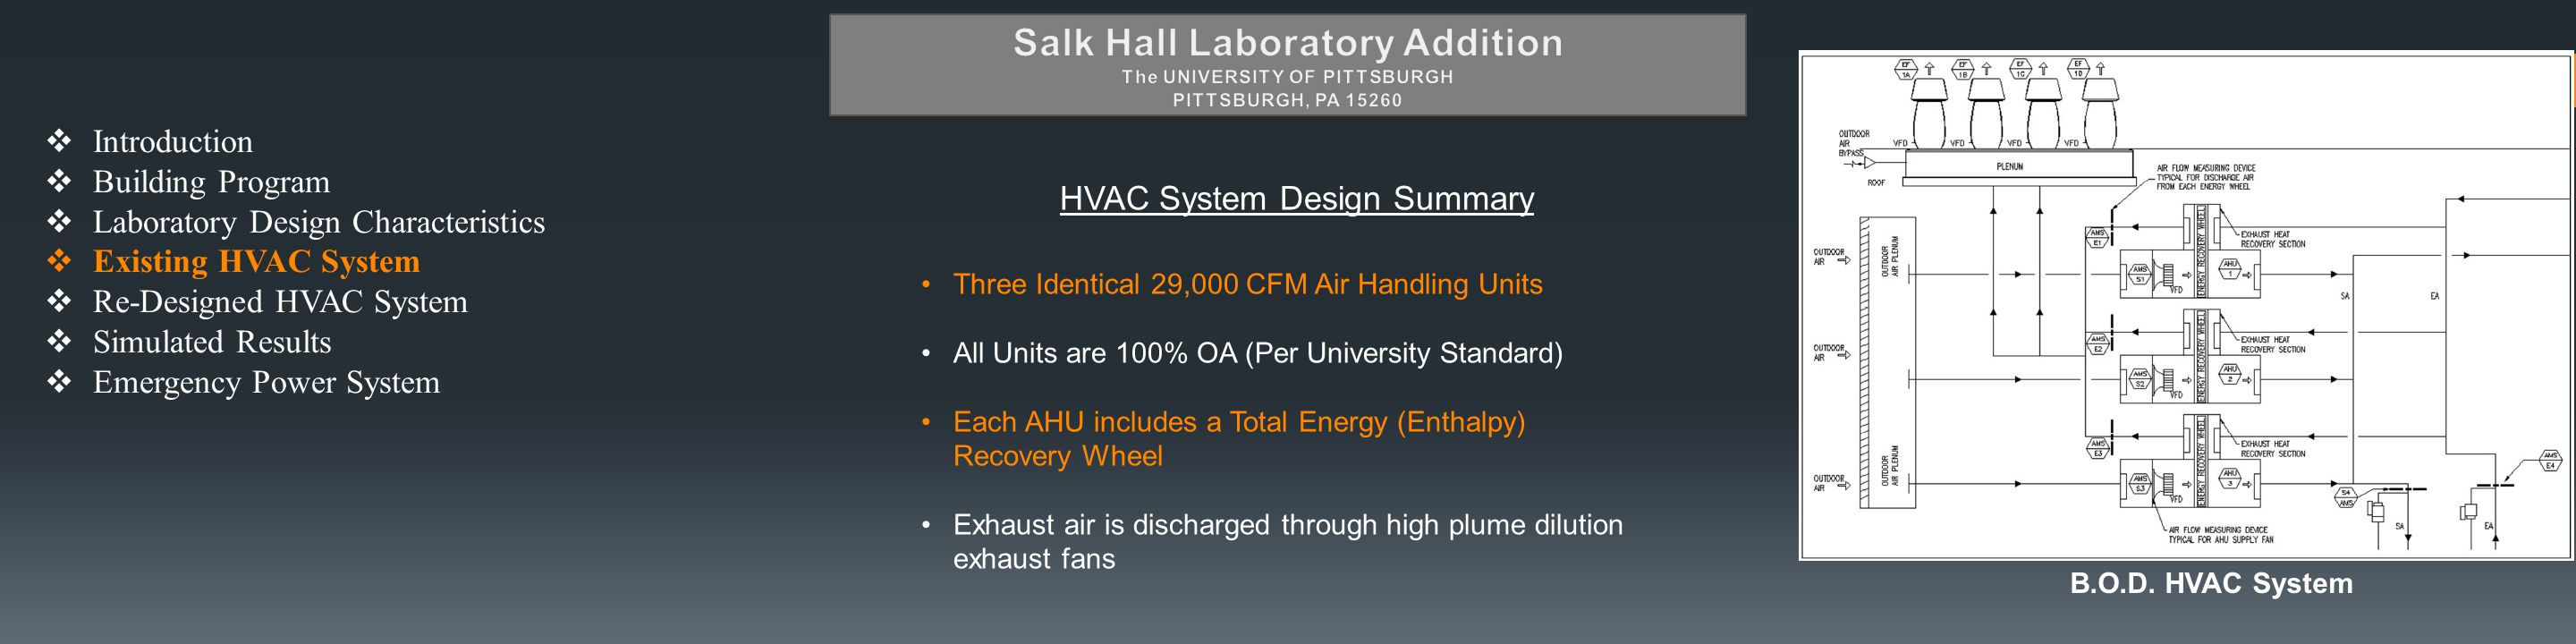  Introduction  Building Program  Laboratory Design Characteristics  Existing HVAC System  Re-Designed HVAC System  Simulated Results  Emergency Power System Comparison BOD Requires 2,353,112 kWh from University Campus CHW plant The Re-Design only requires 604,556 kWh for the HRC Function of amount of airflow being cooled, but also the lack of heat recovery at the chilled water plant Cooling tower load is 76% less than that of the BOD